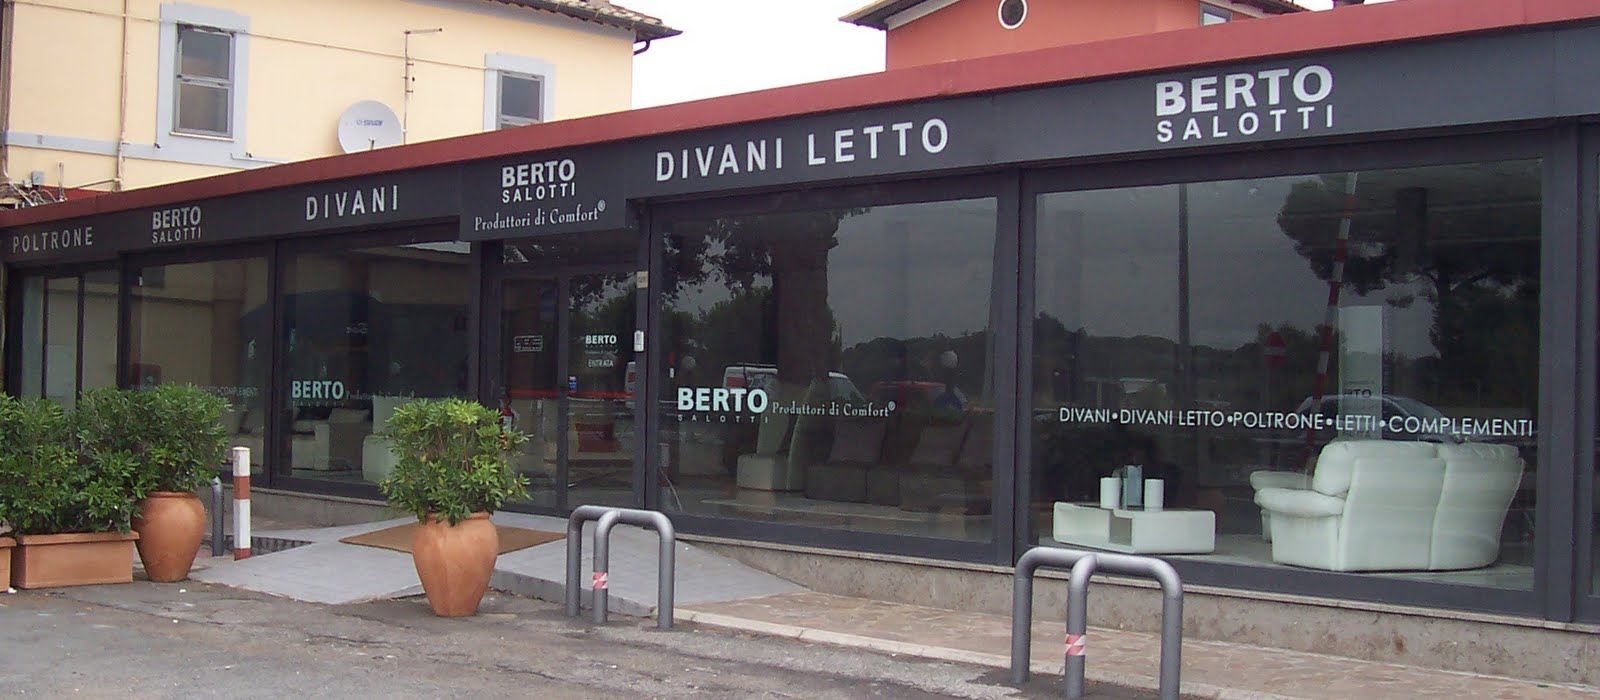 Berto Salotti Blog: Finally...l\'insegna dello showroom Berto Salotti ...